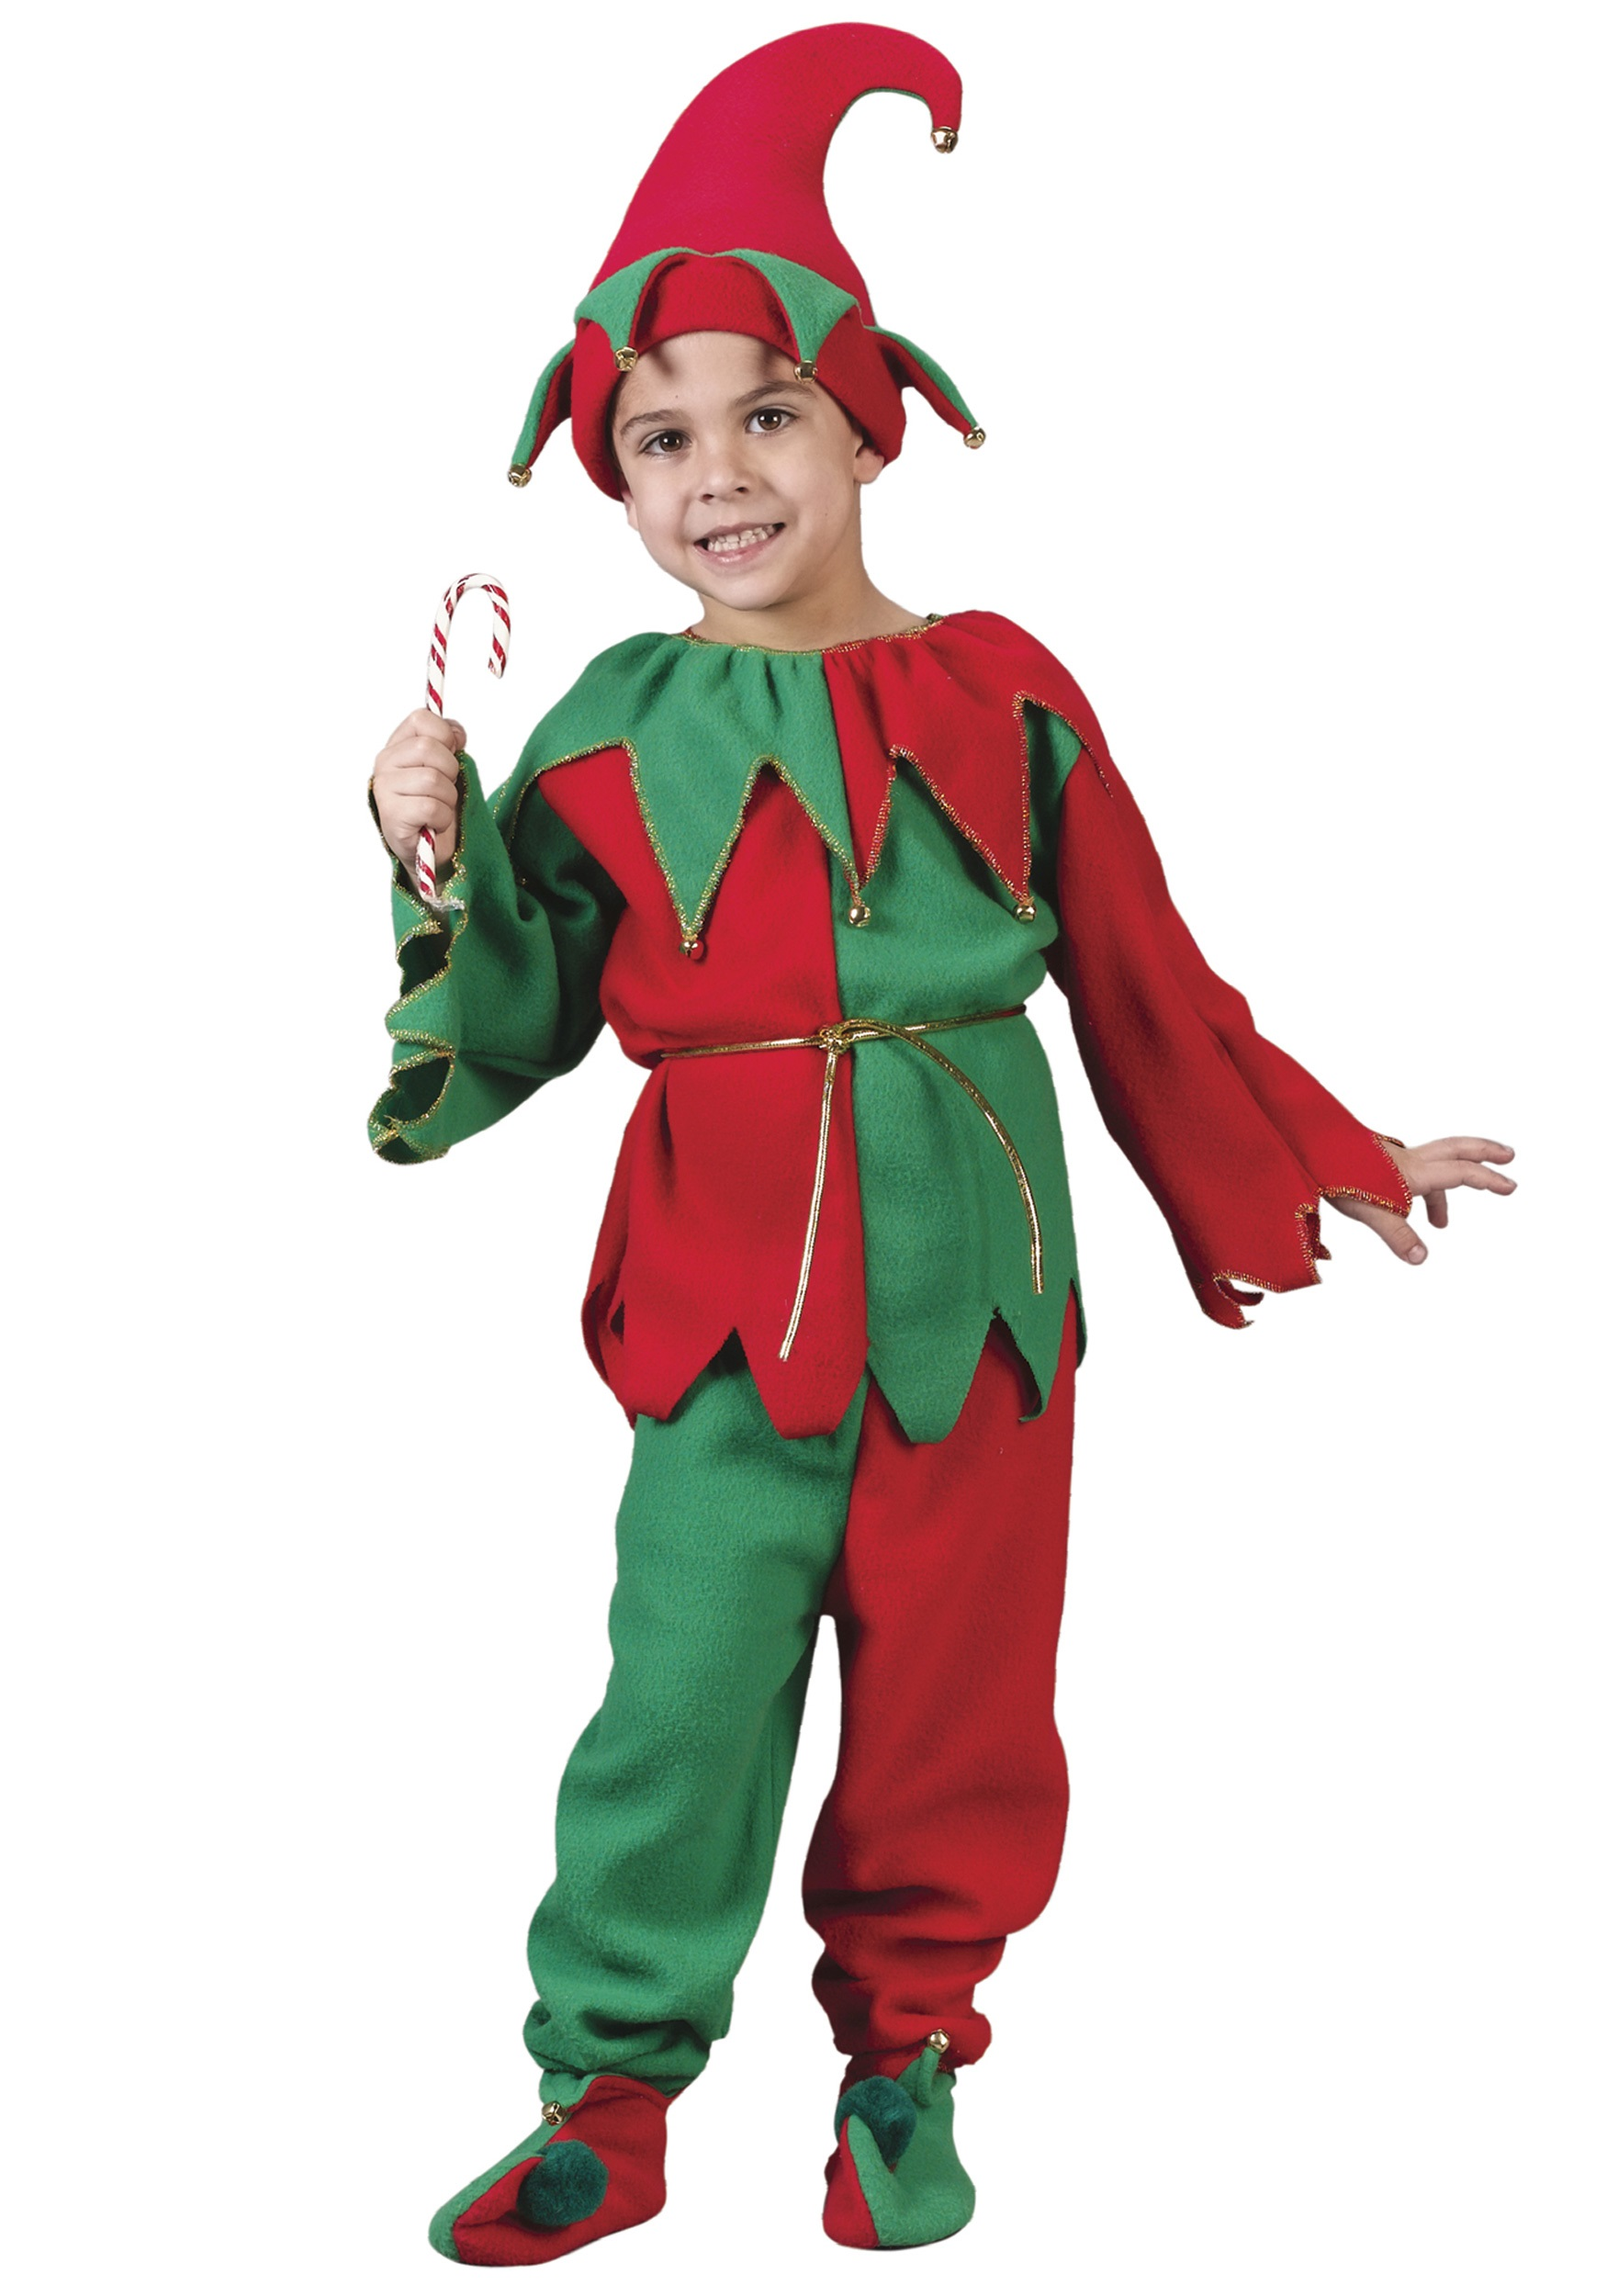 sc 1 st  Halloween Costumes : elf costume toddler  - Germanpascual.Com